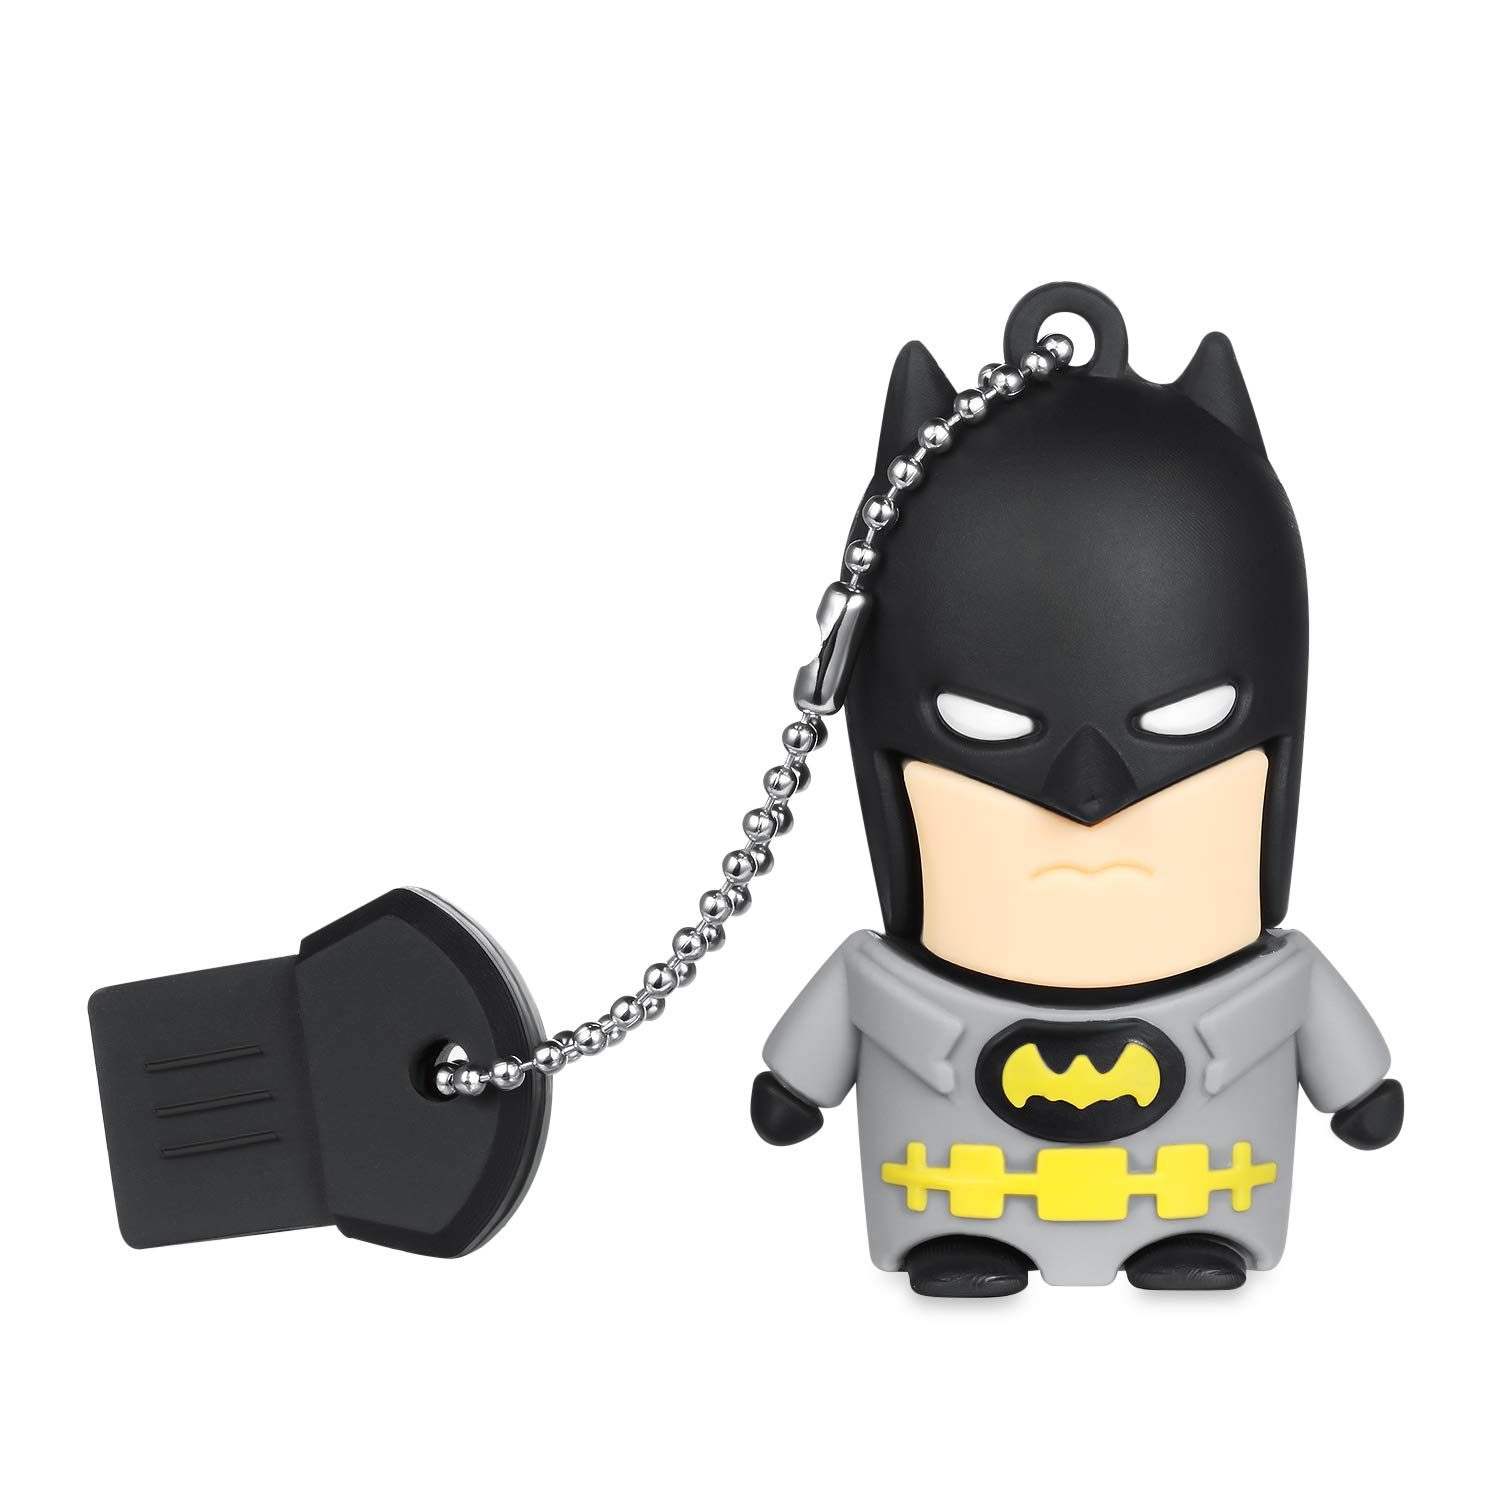 Zoook B Man 16GB USB Flash Drive